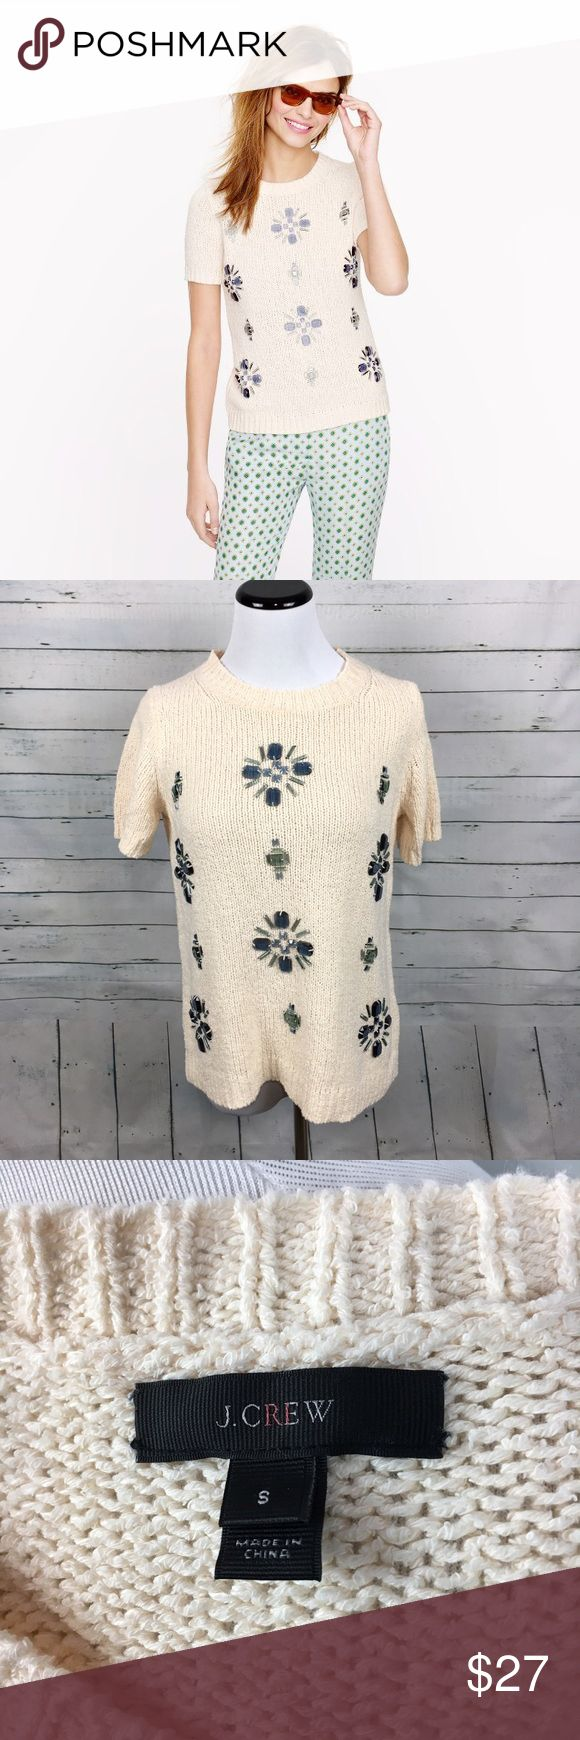 "J.Crew Jeweled Medallion Sweater cream short Women's J.crew jeweled medallion sweater size small. beautiful cream color.  some of the jewels coming loose. please see photos.  armpit to armpit-20"" overall length-26"" J. Crew Sweaters"